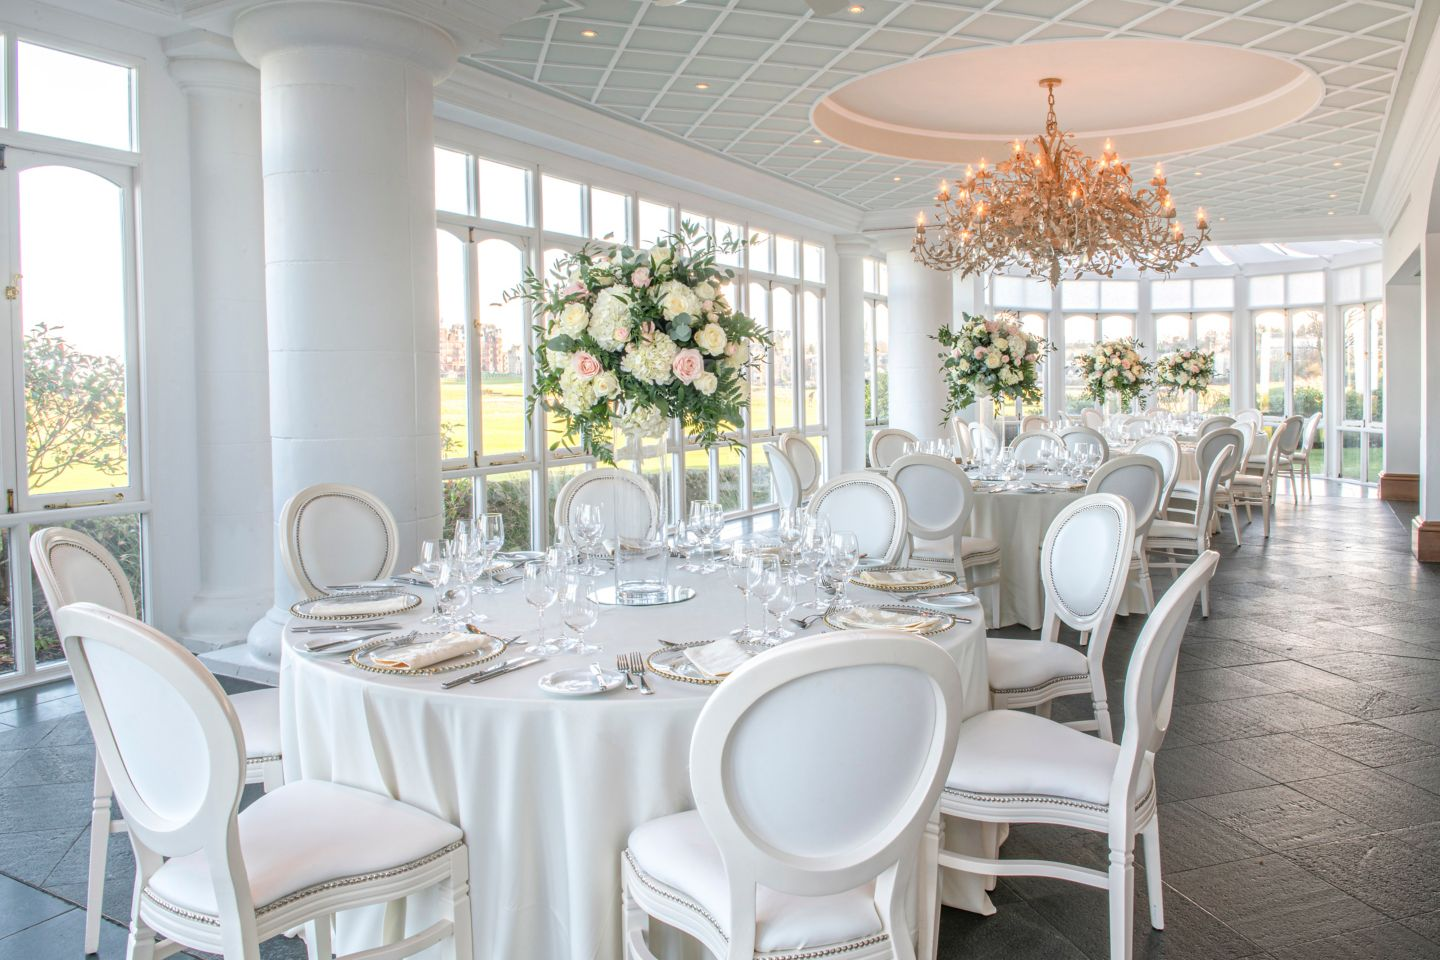 Wedding dinner in the Conservatory. View our wedding ceremony and reception spaces at the Old Course Hotel, Golf Resort & Spa